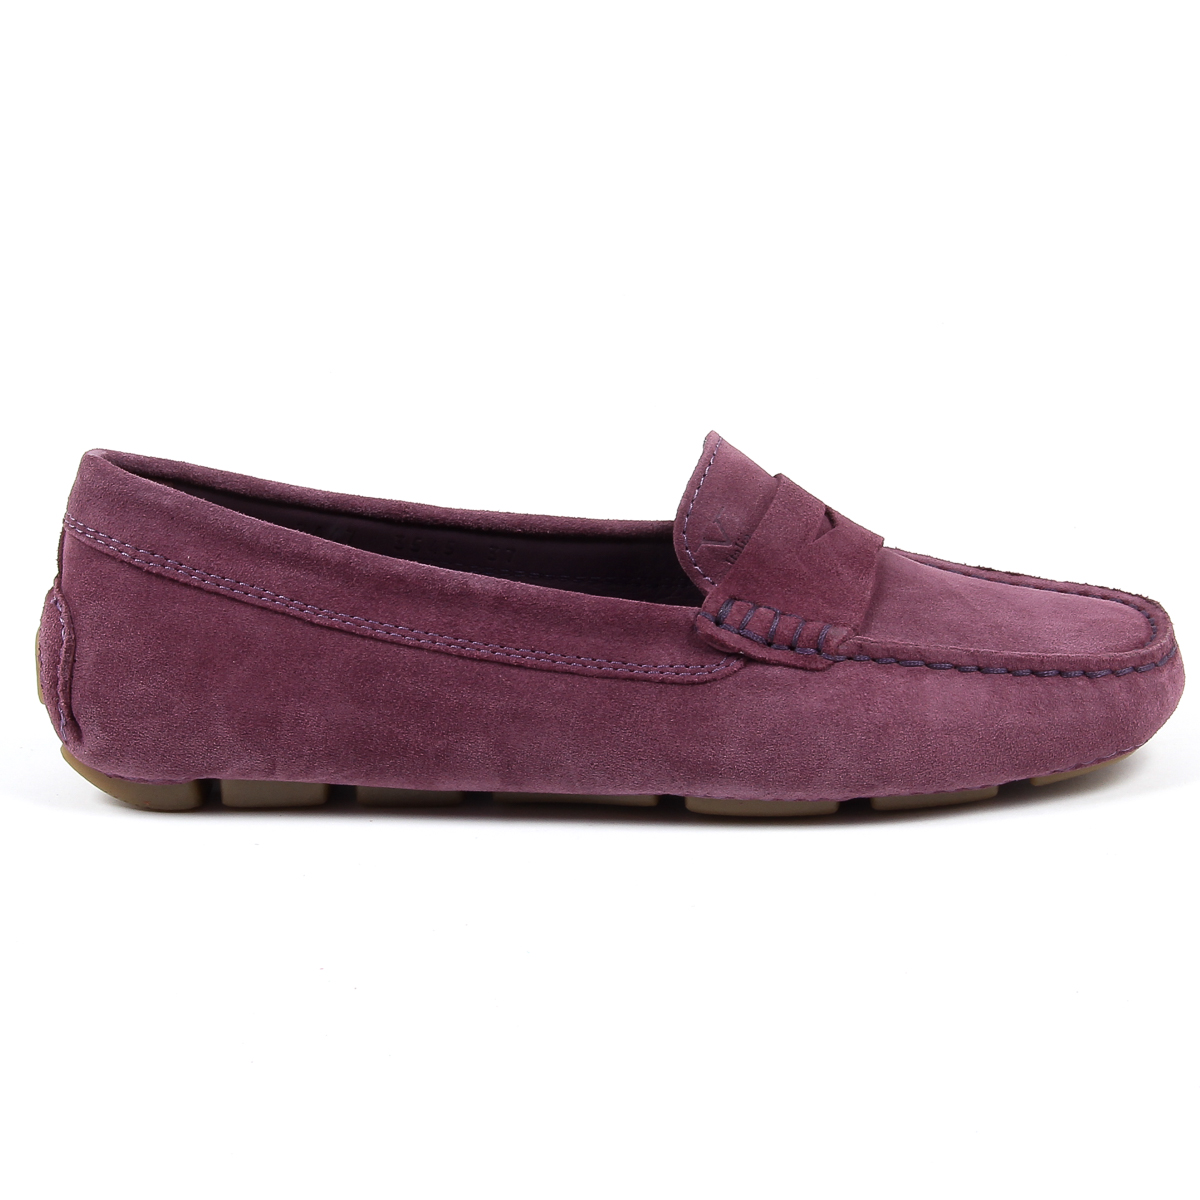 Primary image for V 1969 Italia Womens Loafer Purple AMALFI